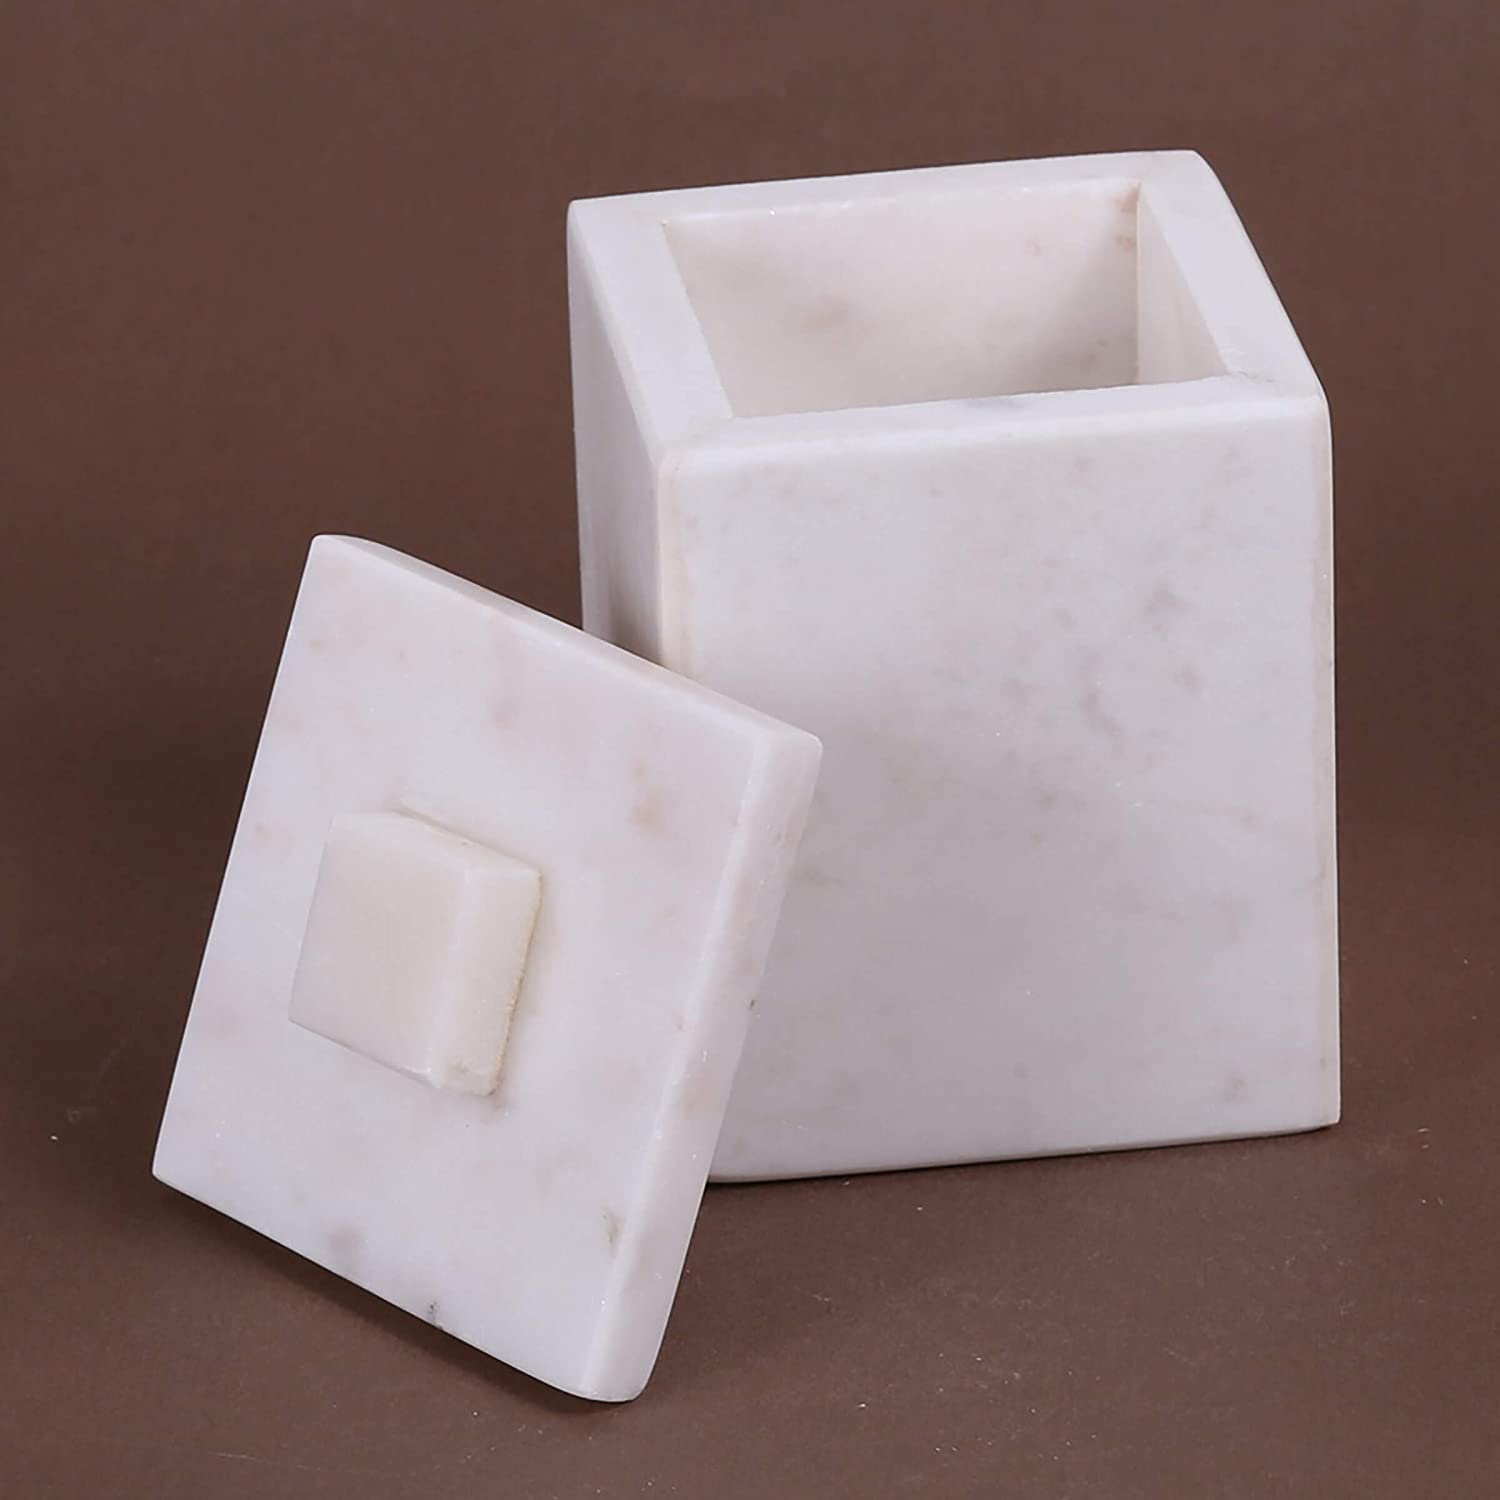 Creamy White Marble Cotton Ball Holder Stone